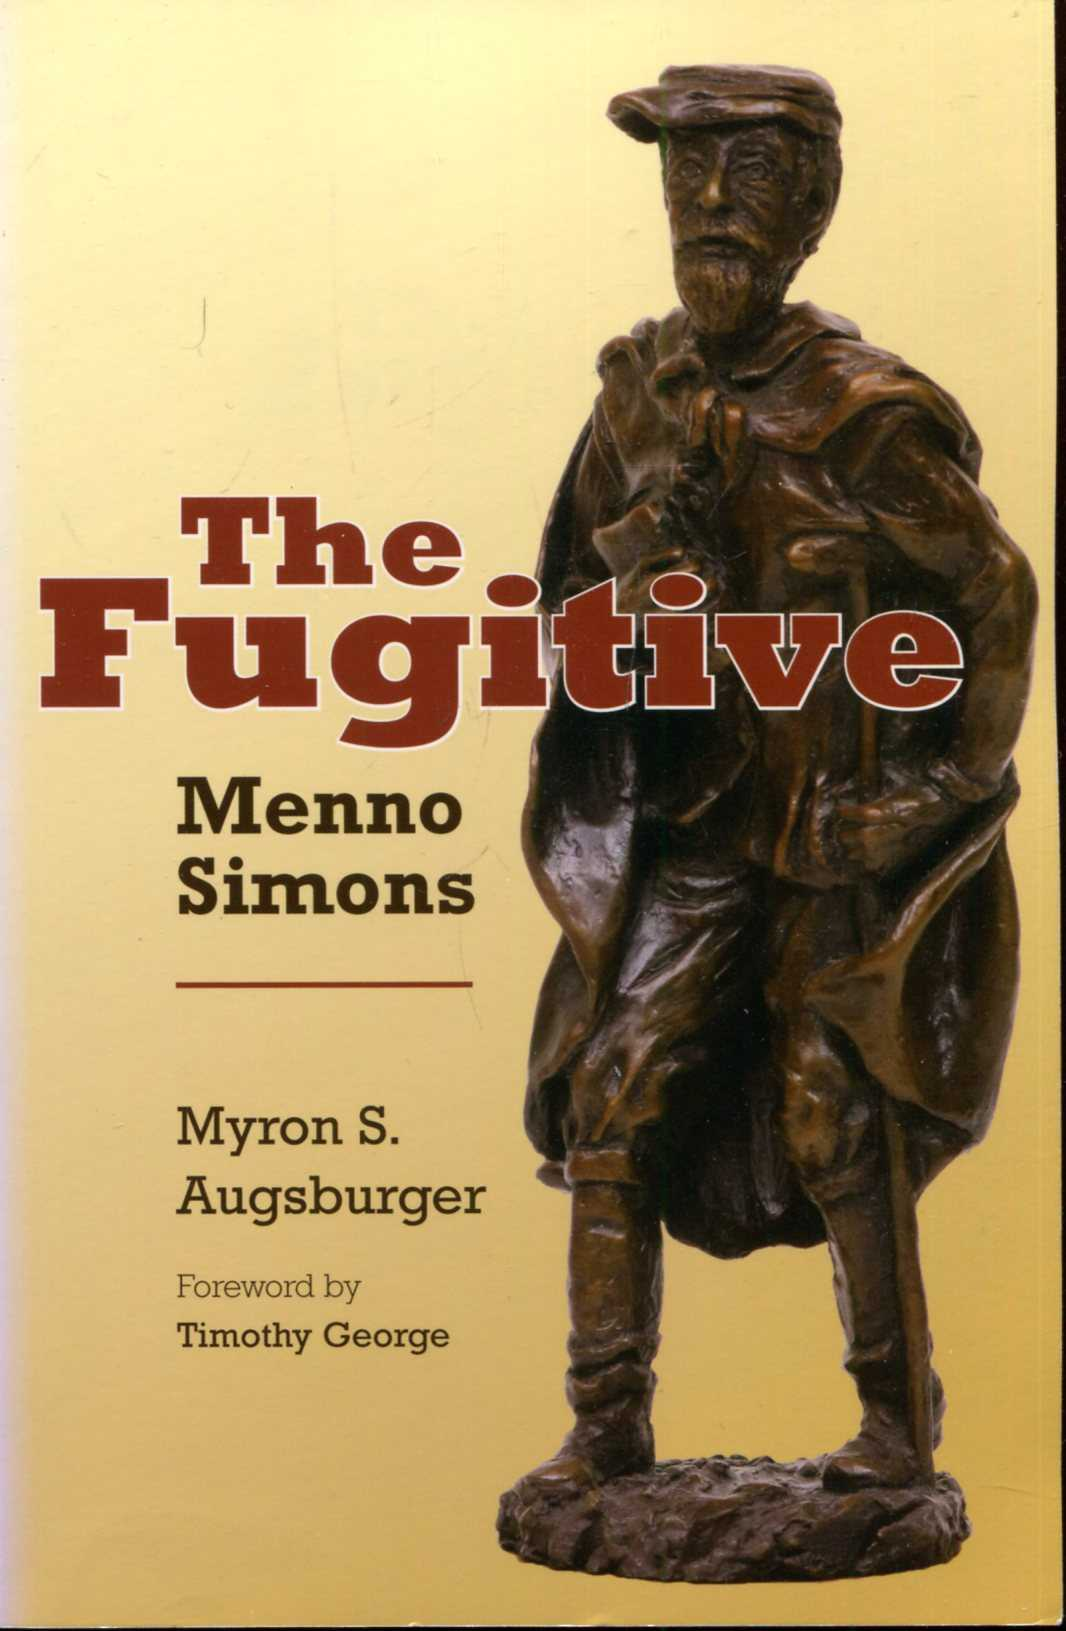 Image for The Fugitive: Menno Simons, Spiritual Leader in the Free Church Movement